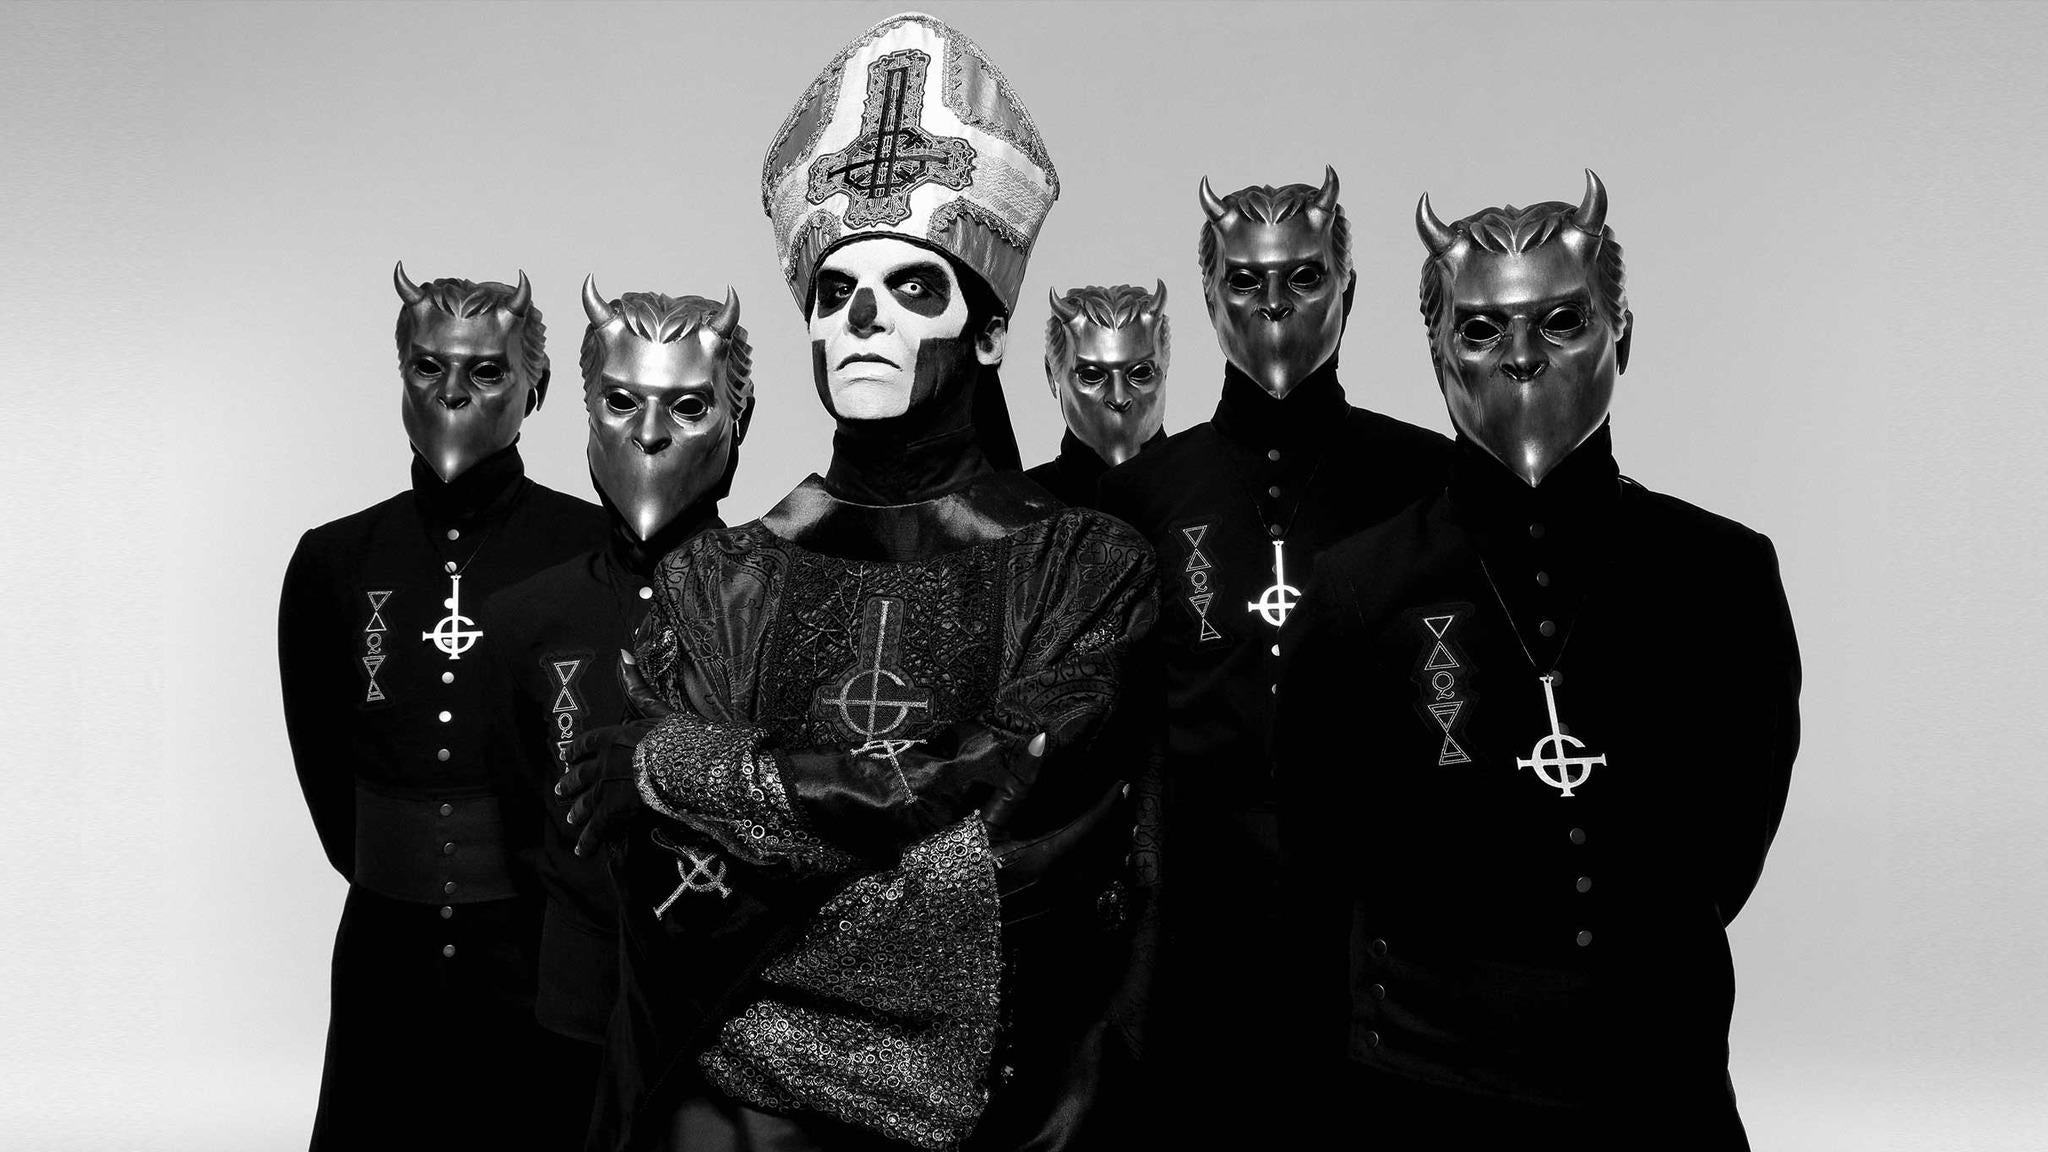 GHOST - POPESTAR Tour presented by SiriusXM's Octane - San Antonio , TX 78205